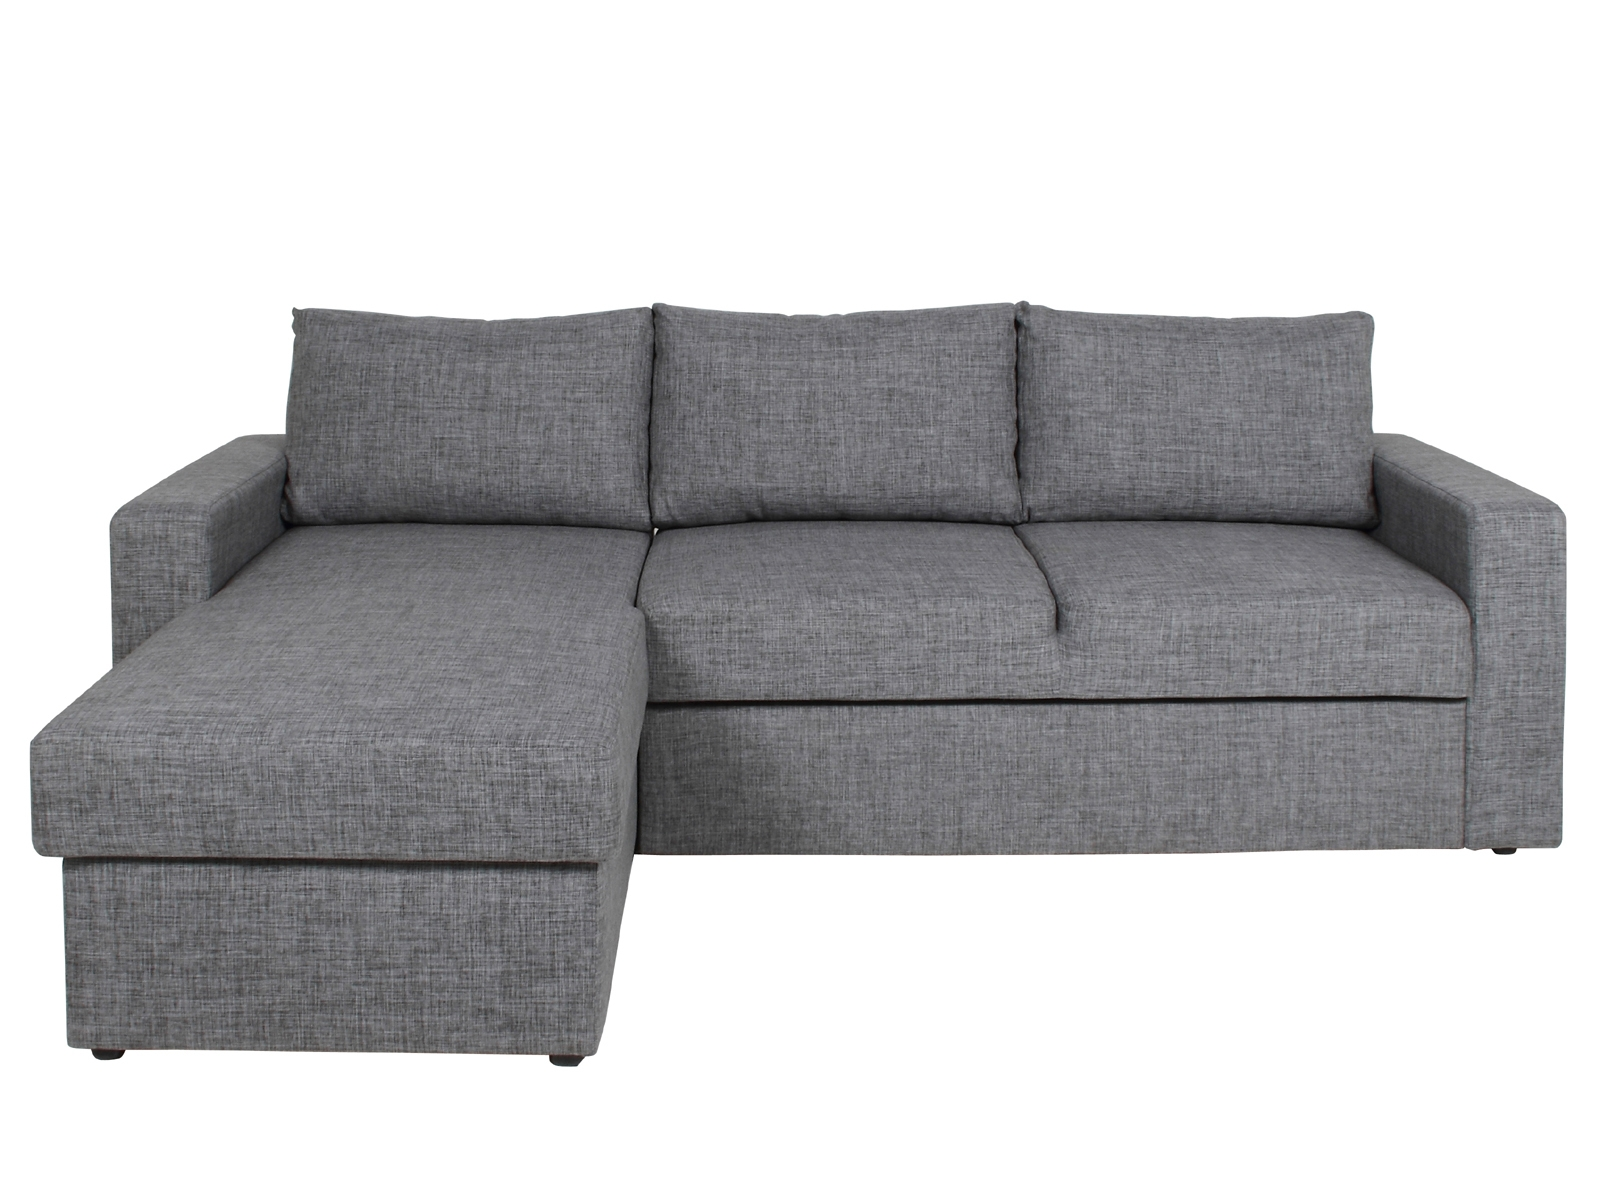 Sofas Center Formidable Corner Sofa Picture Ideas Beds Uk Cheap For Cheap Corner Sofa Bed (Image 11 of 15)